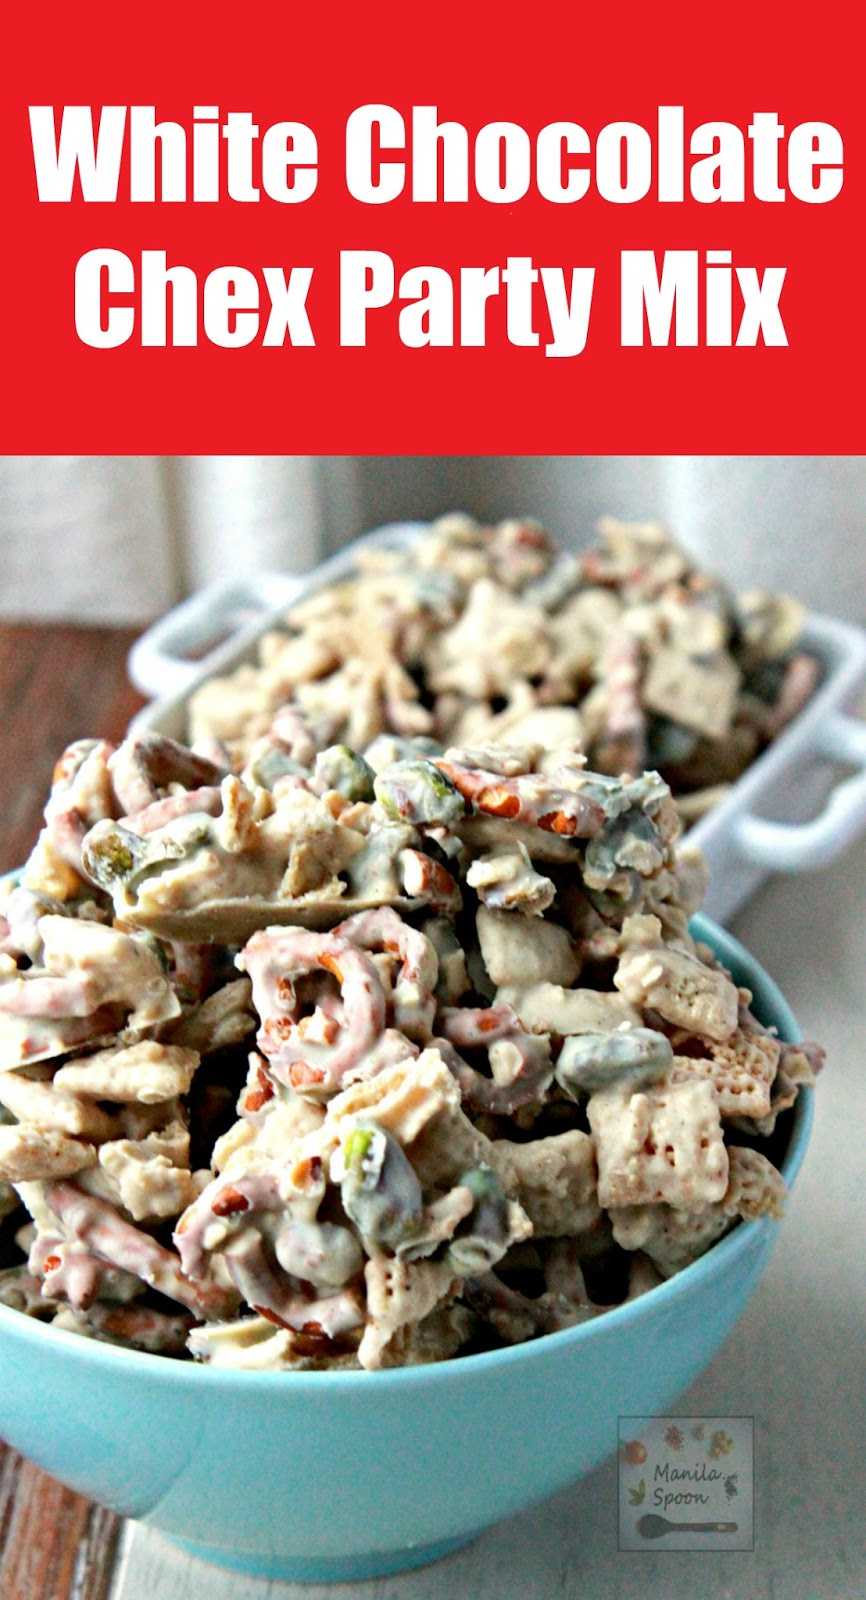 So deliciously good and highly addictive!! Chex cereal, chopped pretzels and pistachios smothered in white chocolate and subtly spiced with Nutmeg or Cinnamon - this White Chocolate Chex Party Mix is the ultimate party snack! NO BAKE!